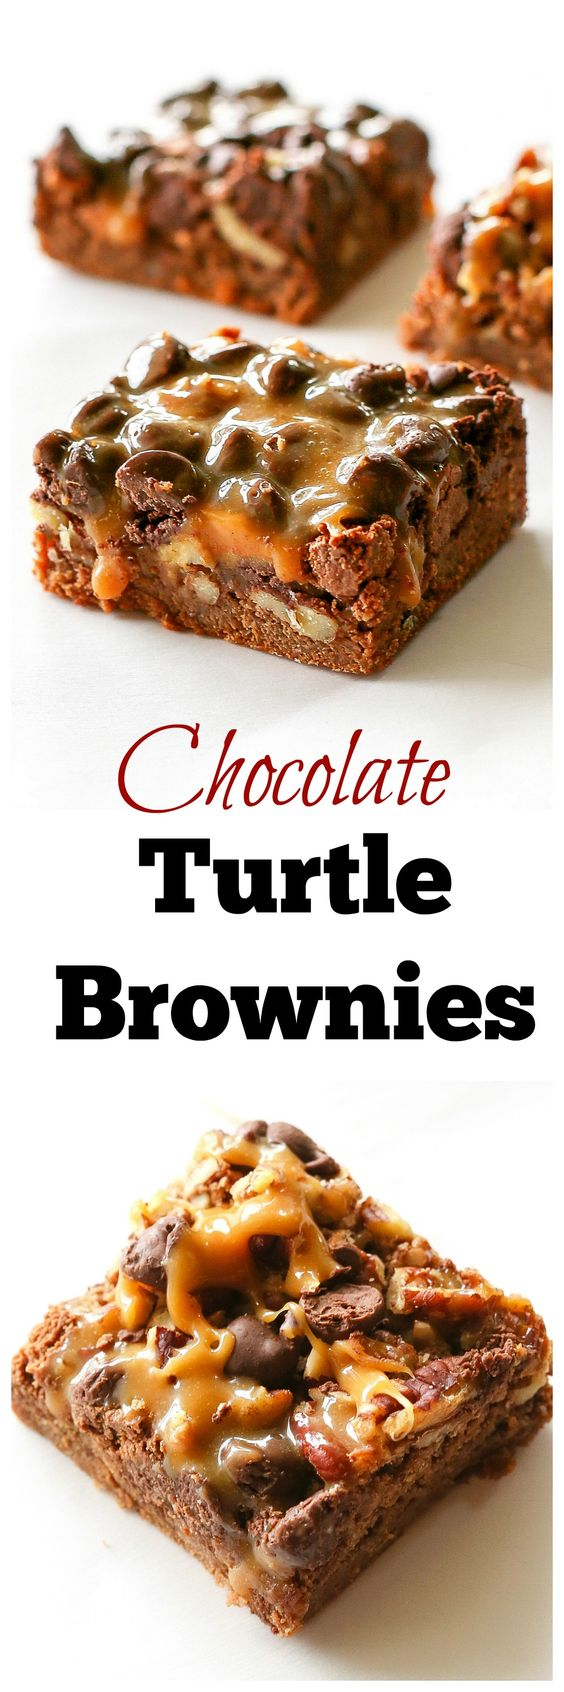 These Chocolate Turtle Brownies are rich chocolate brownies with gooey caramel, nuts, and more chocolate. the-girl-who-ate-everything.com